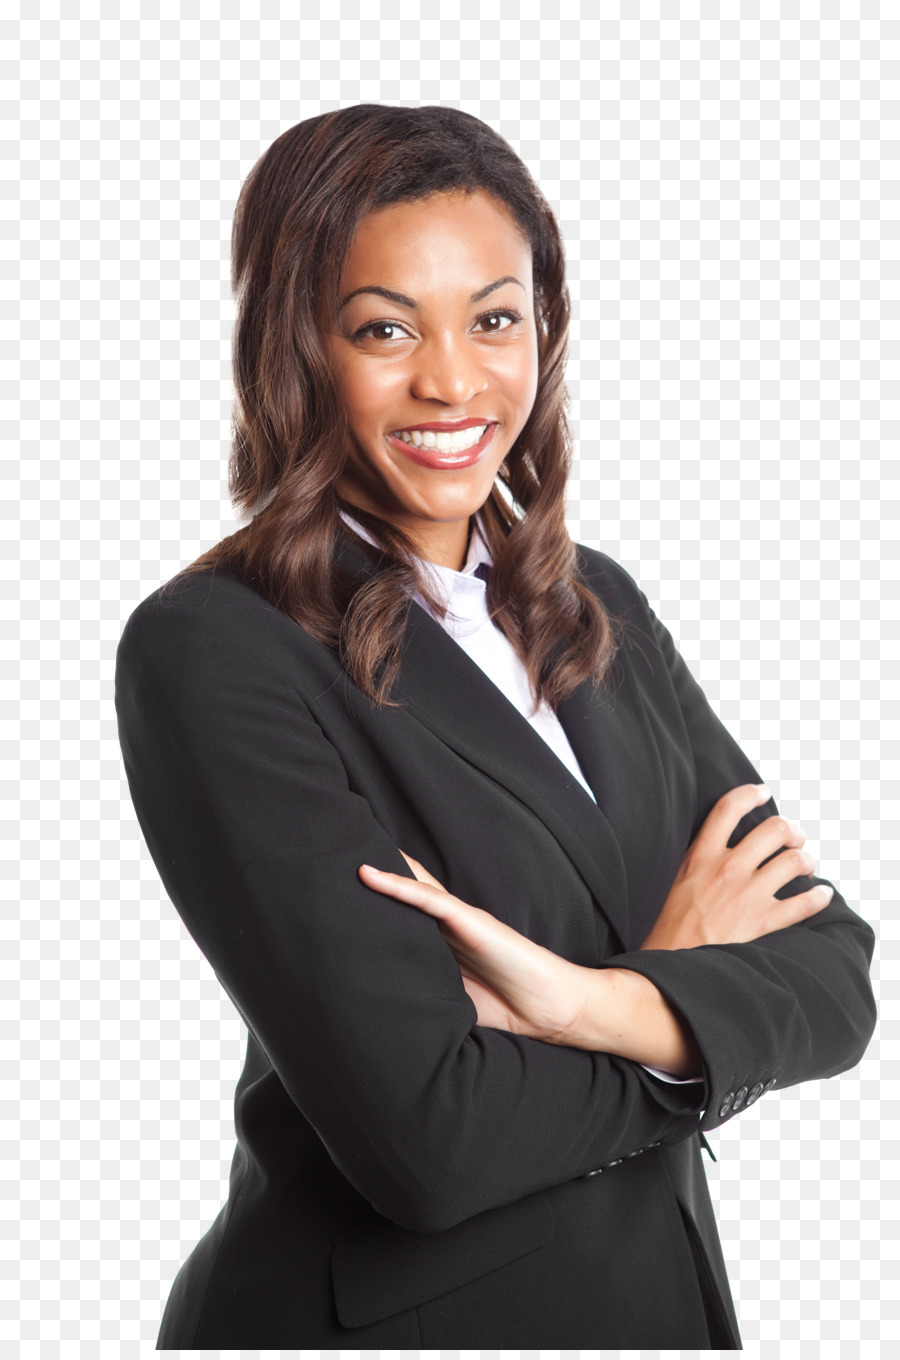 Business Woman png download.